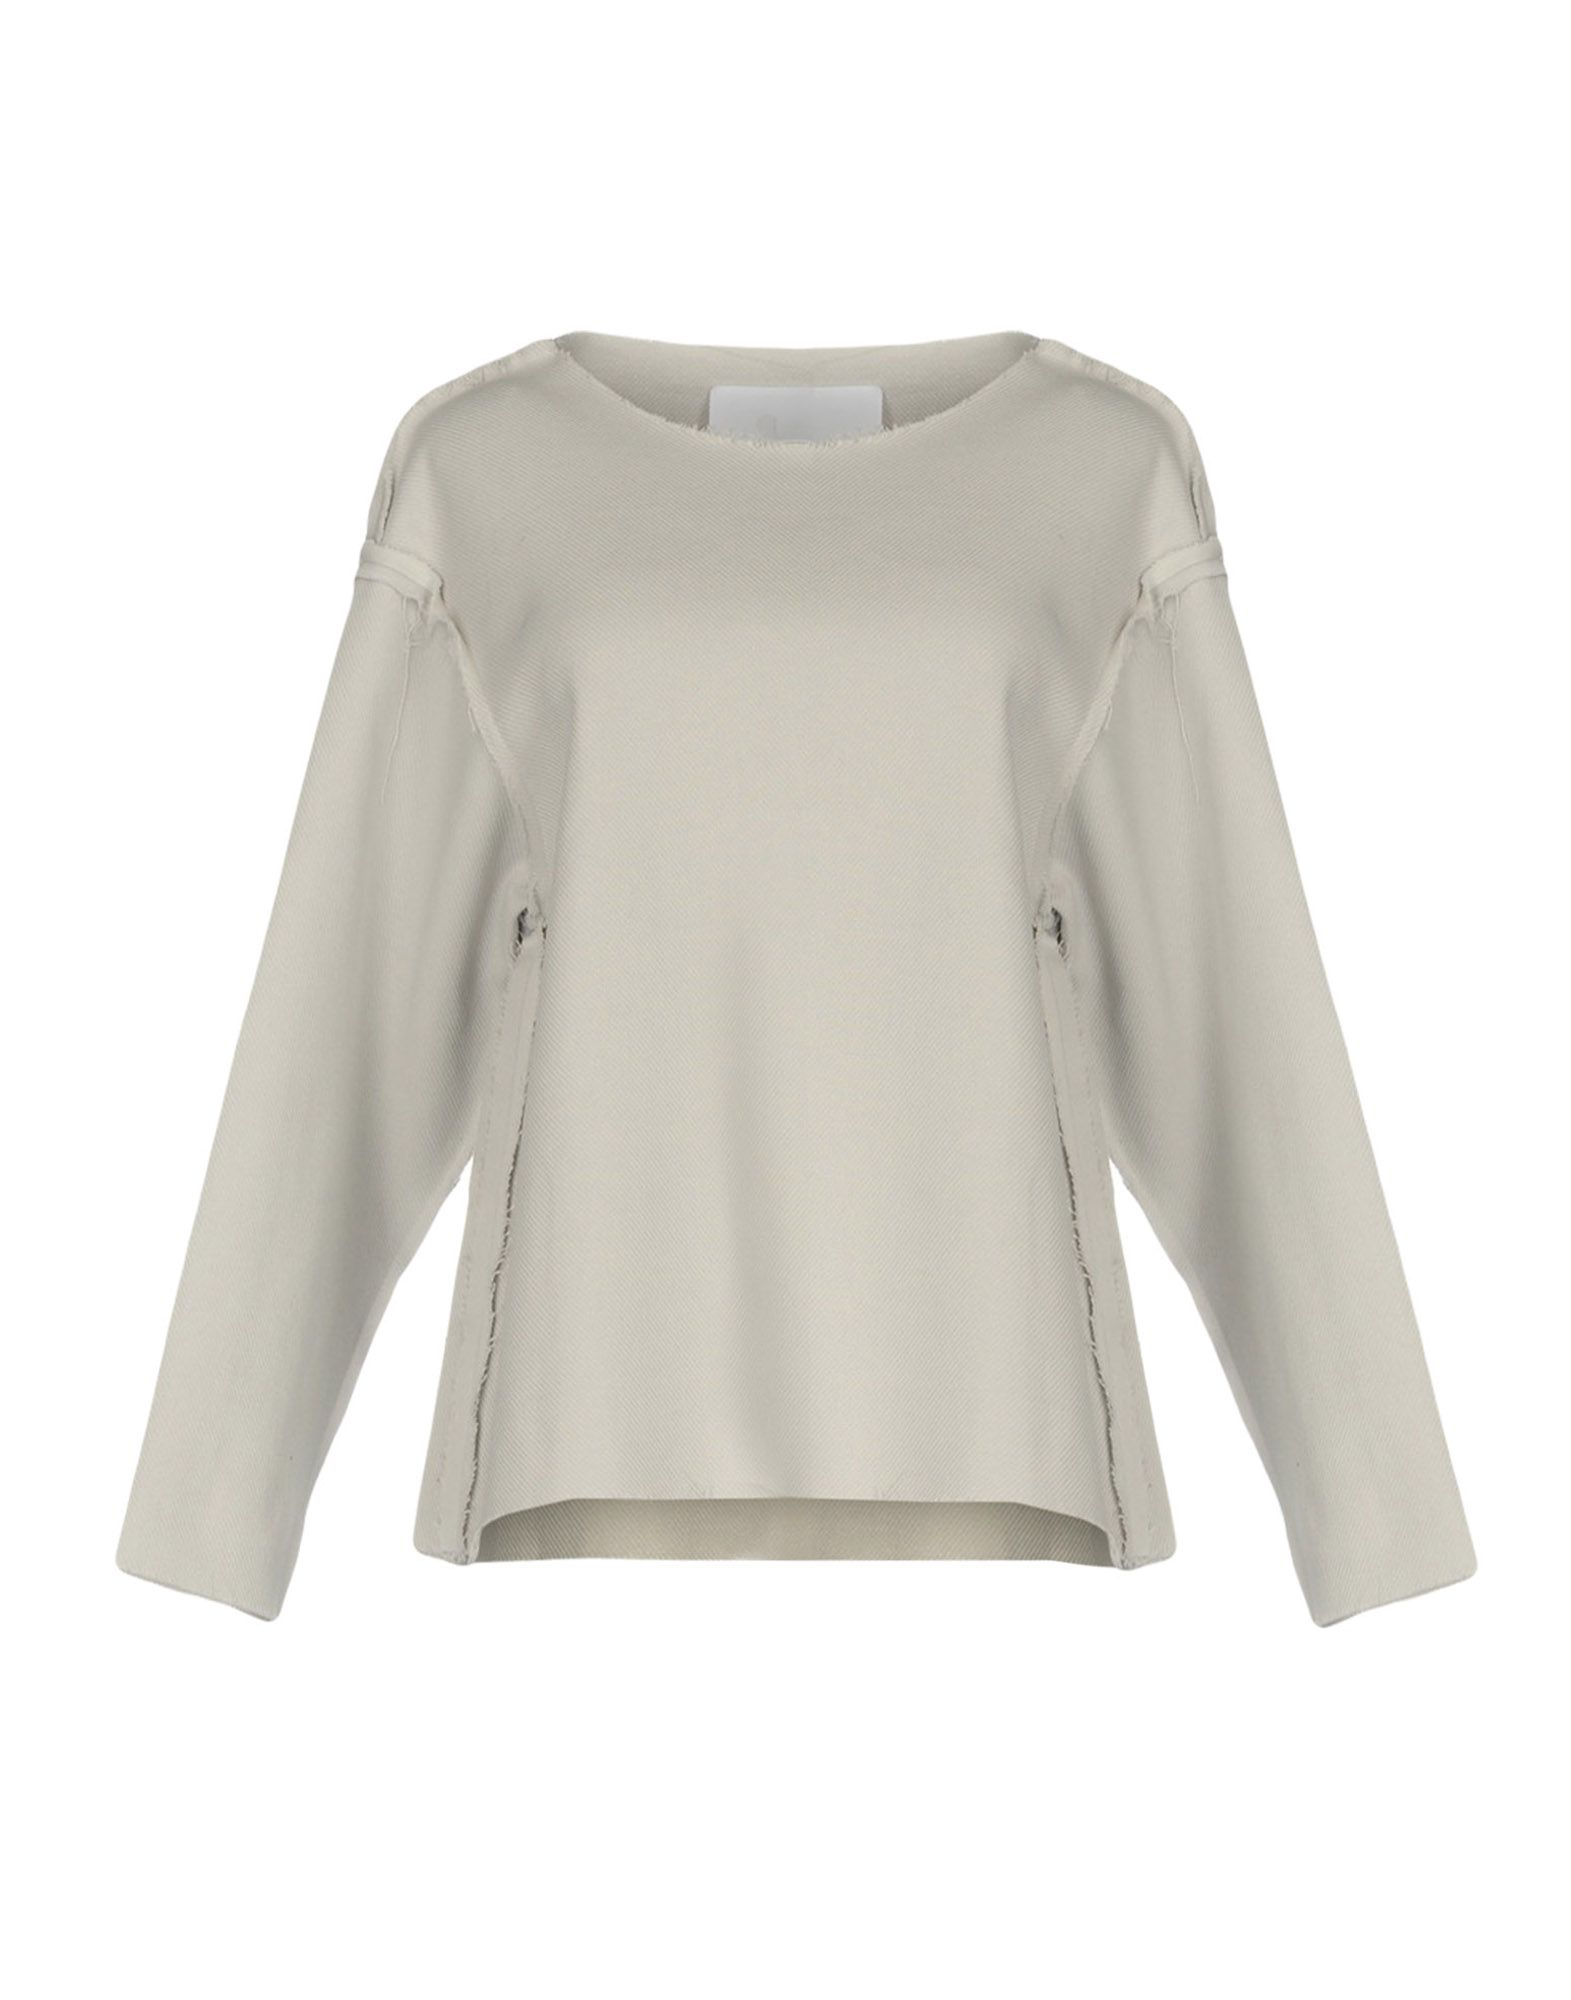 CHARLIE MAY Blouse in Light Grey